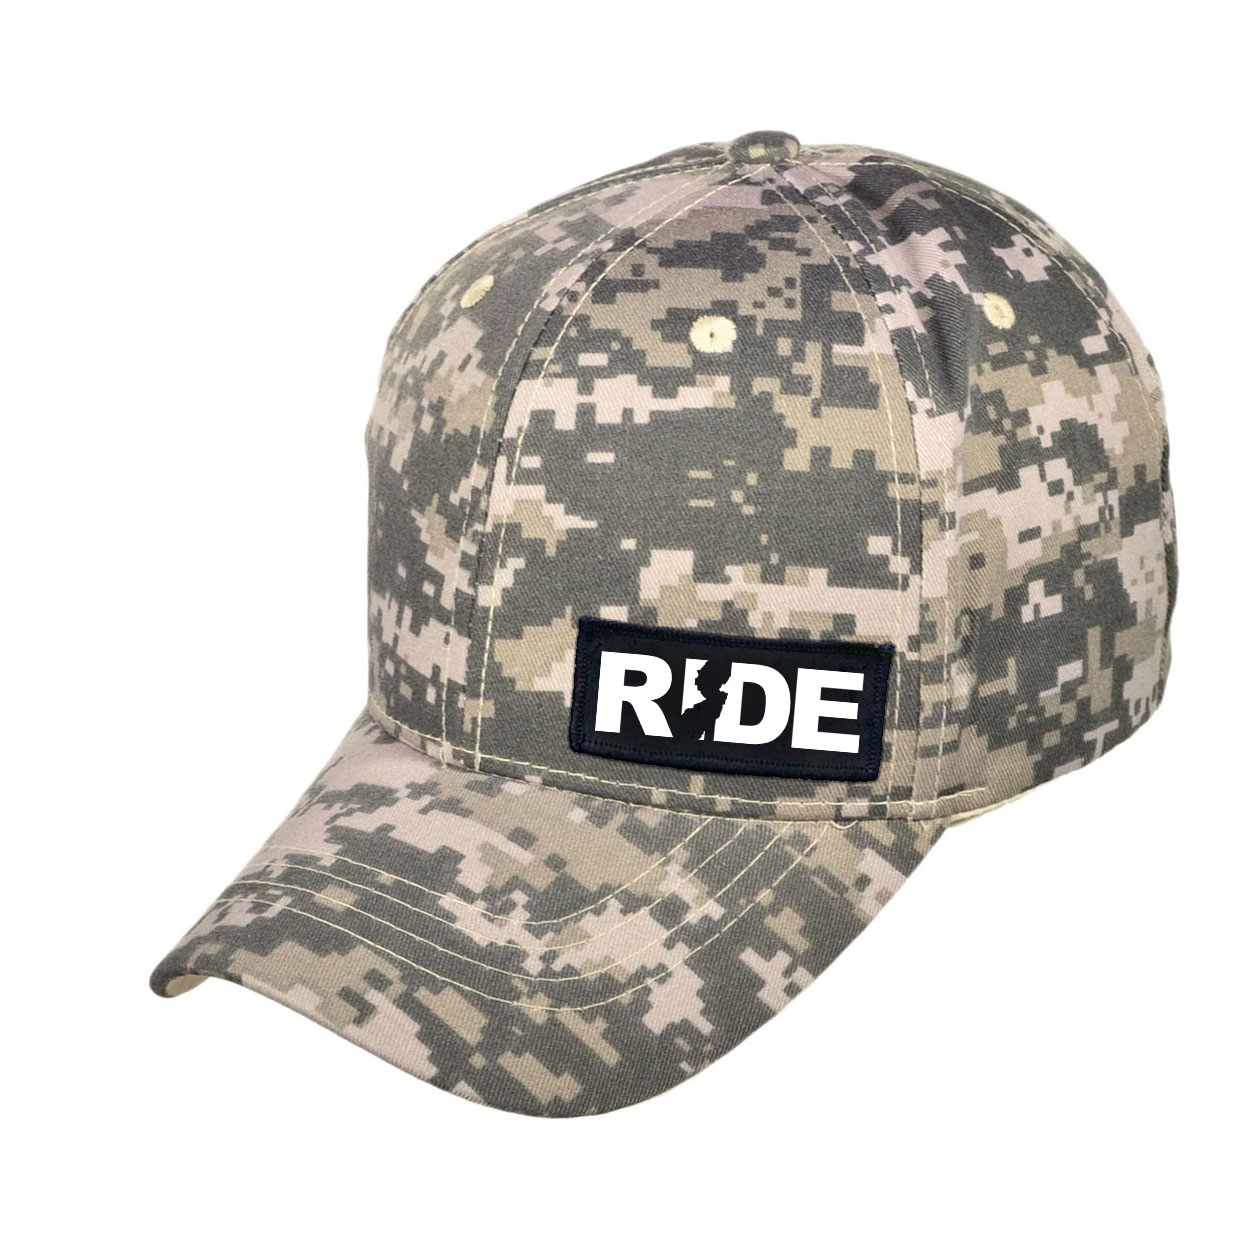 Ride New Jersey Night Out Woven Patch Hat Digital Camo (White Logo)